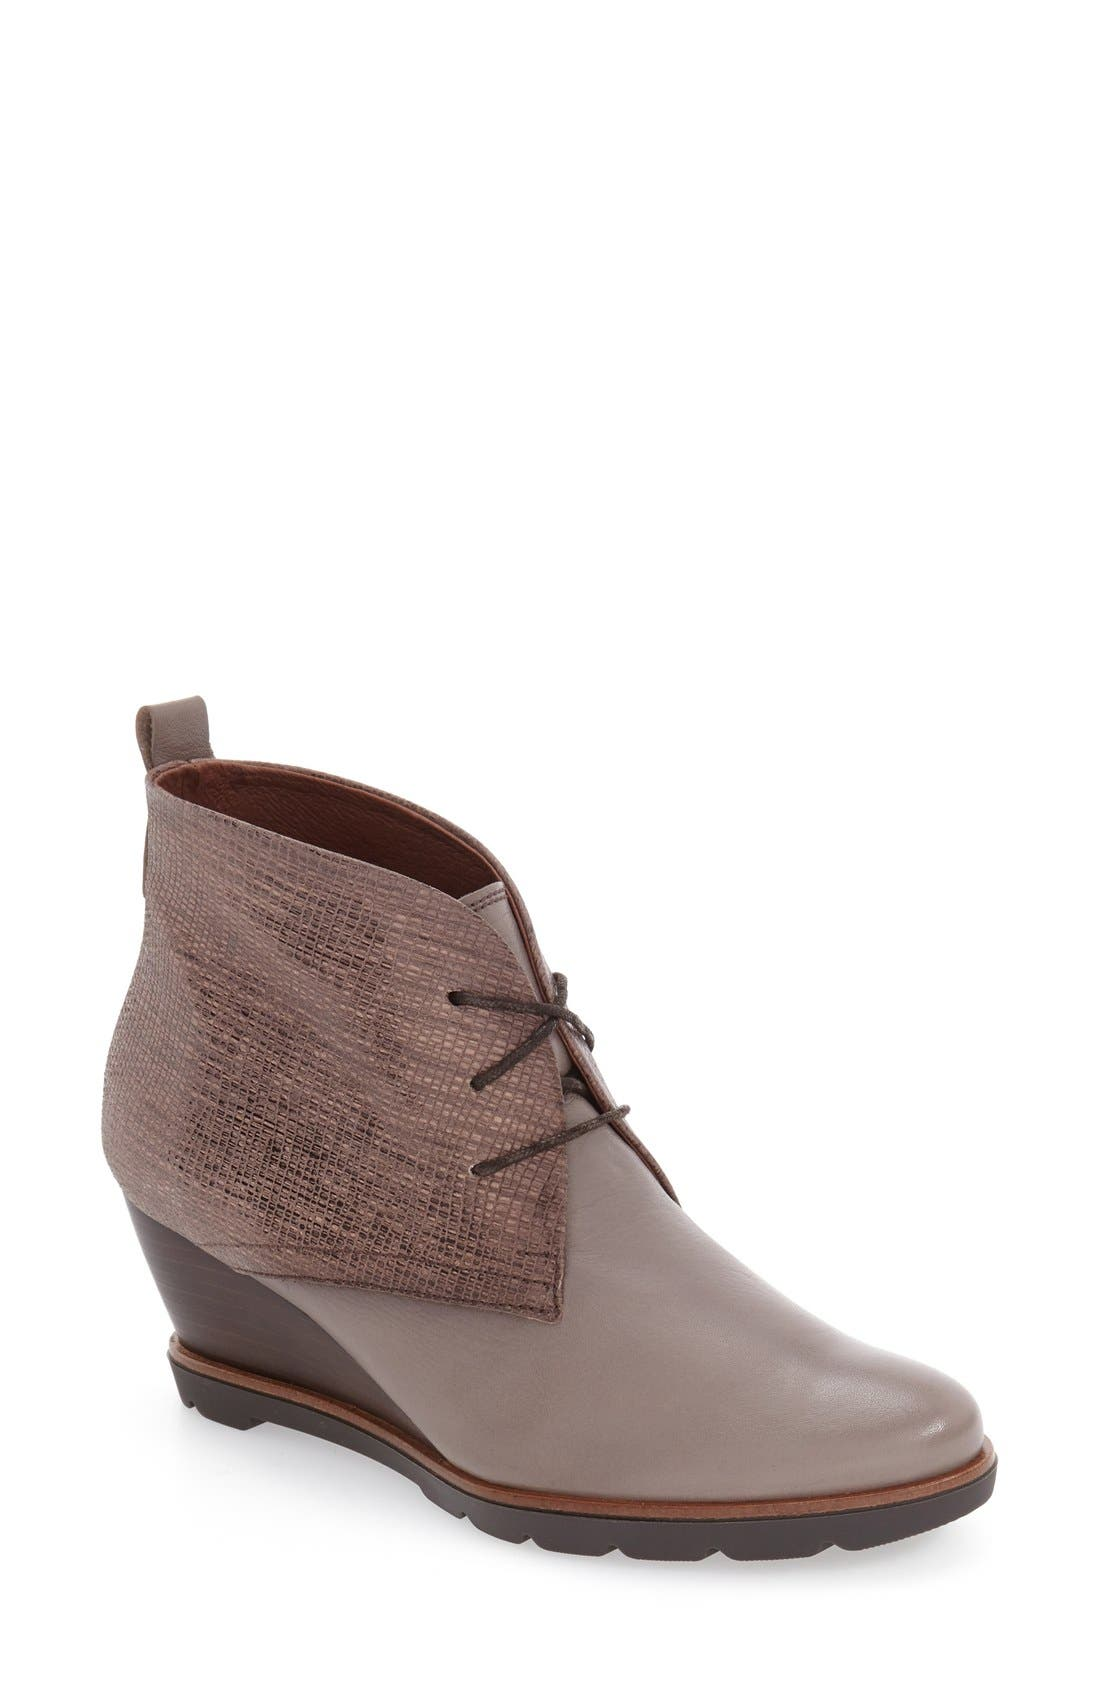 Main Image - Hispanitas 'Harmonie' Lace-Up Wedge Bootie (Women)